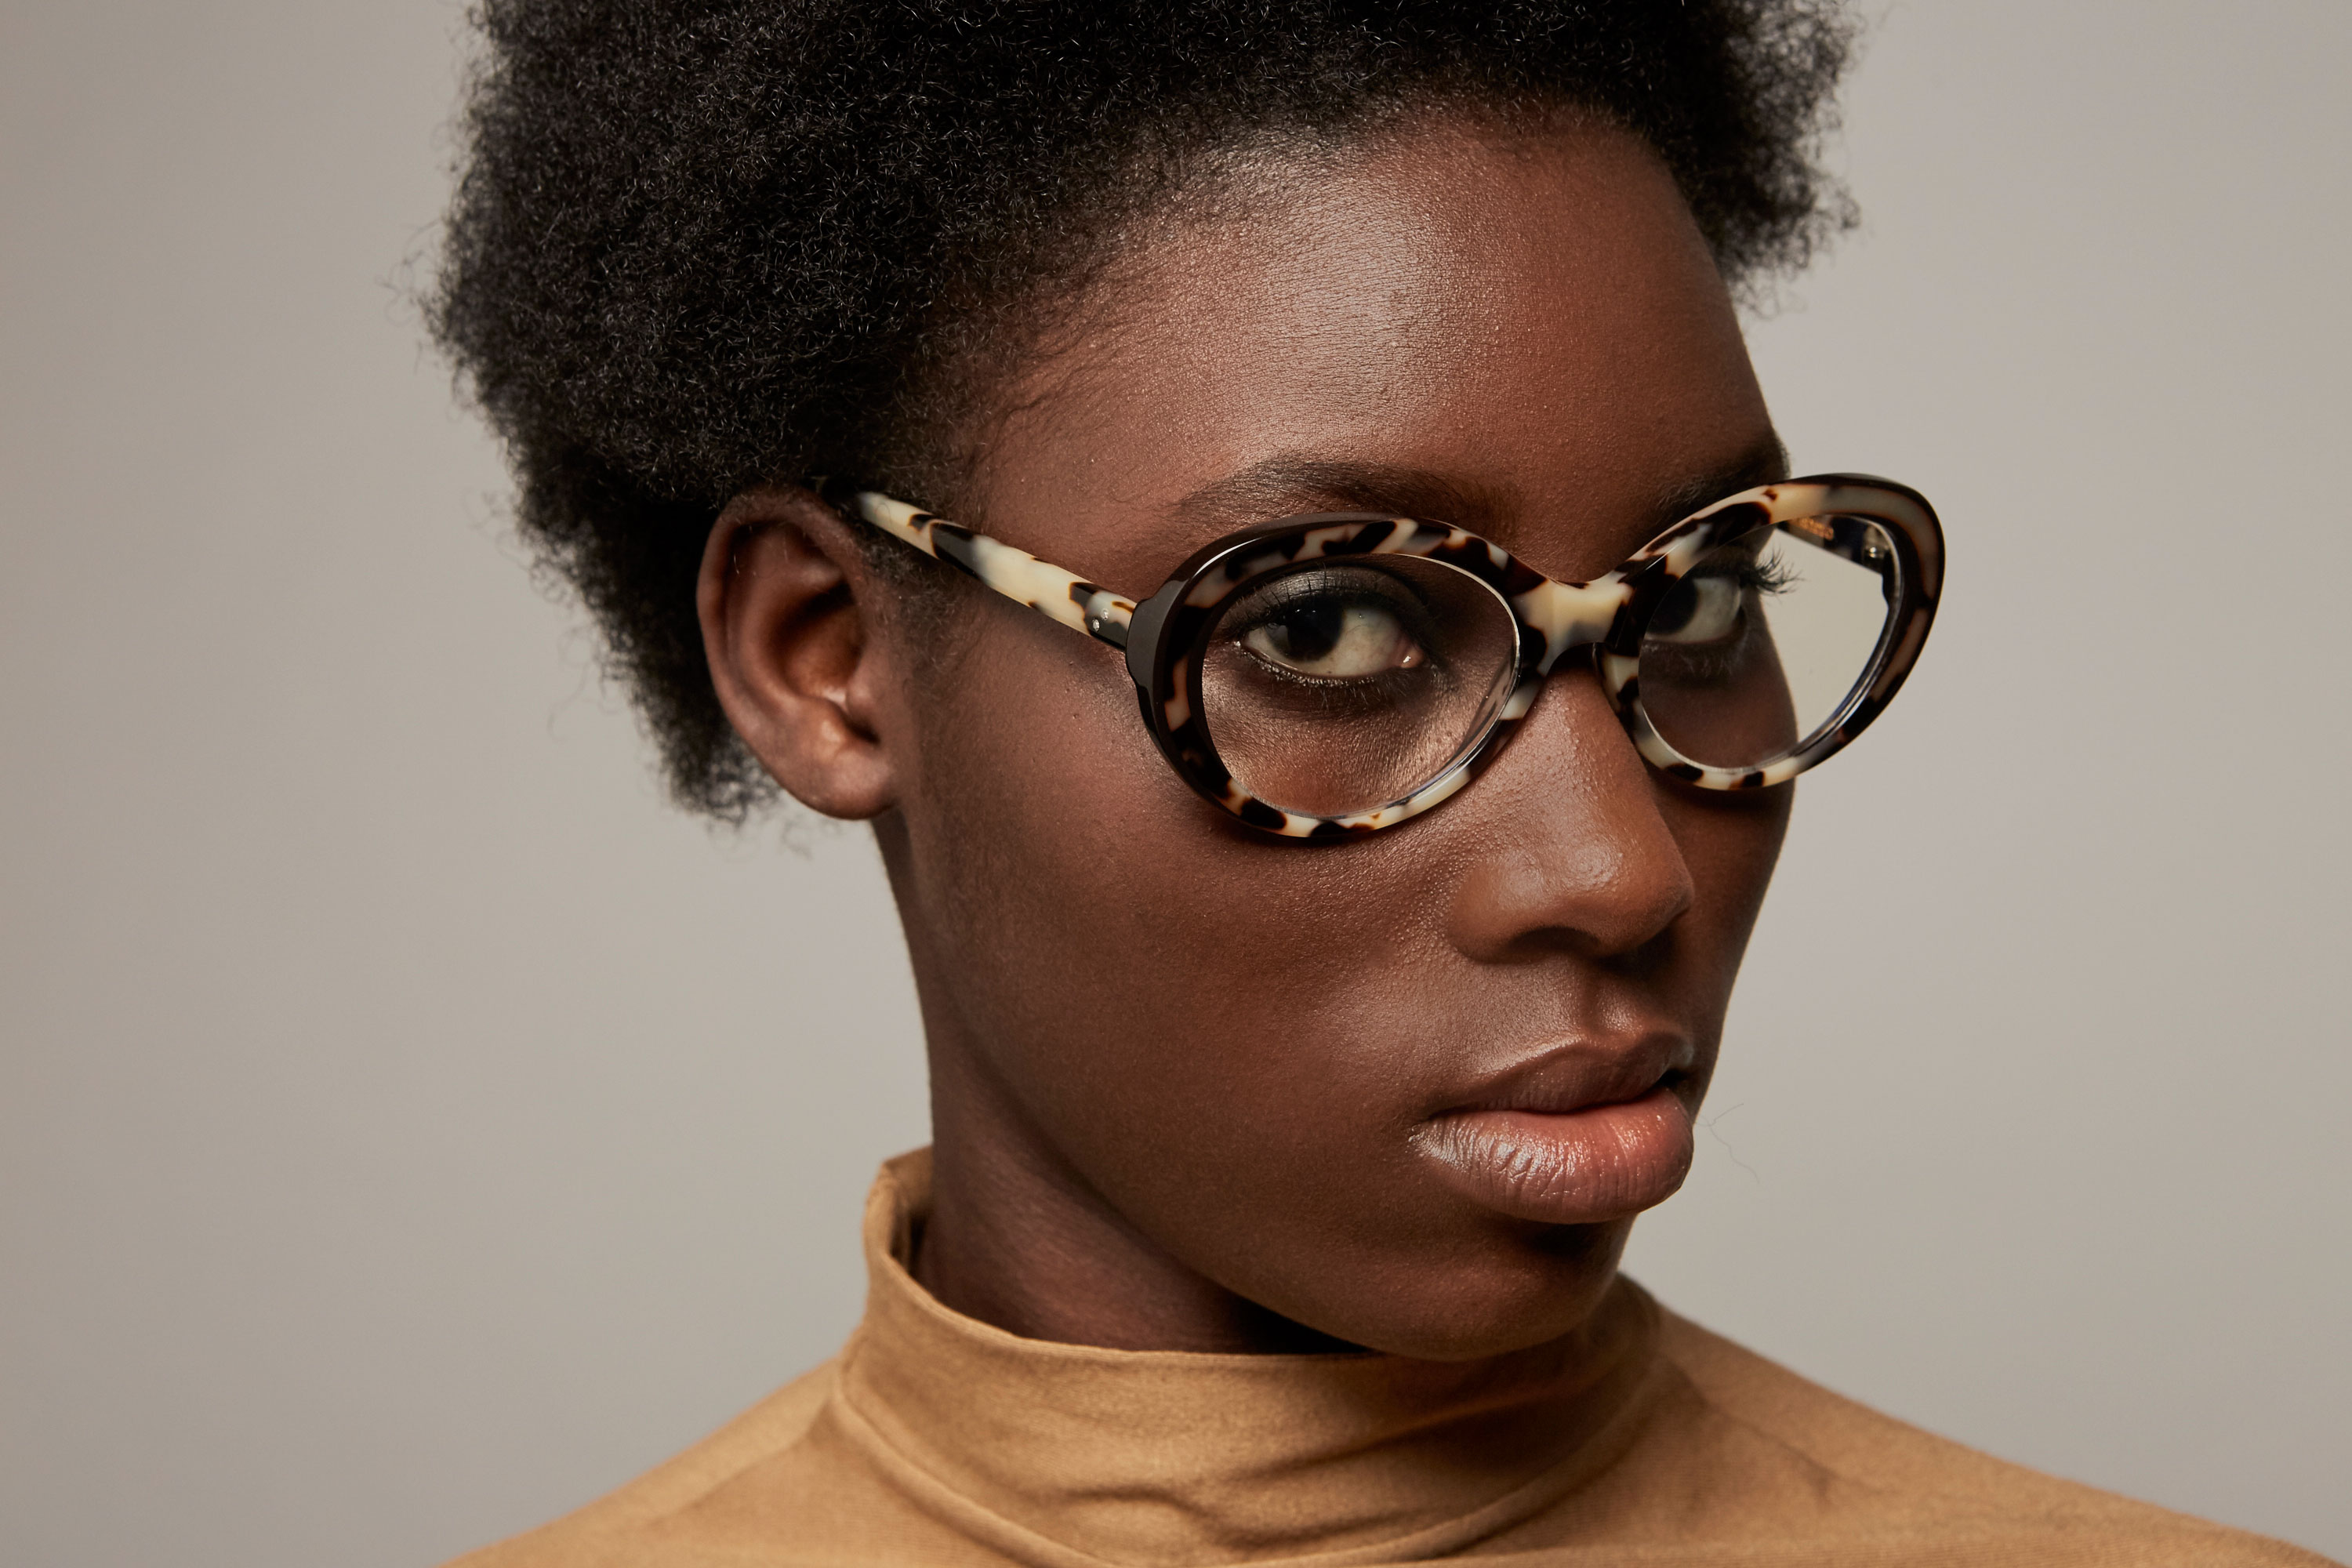 Nadine acetate rounded tortoise sunglasses by GIGI Studios